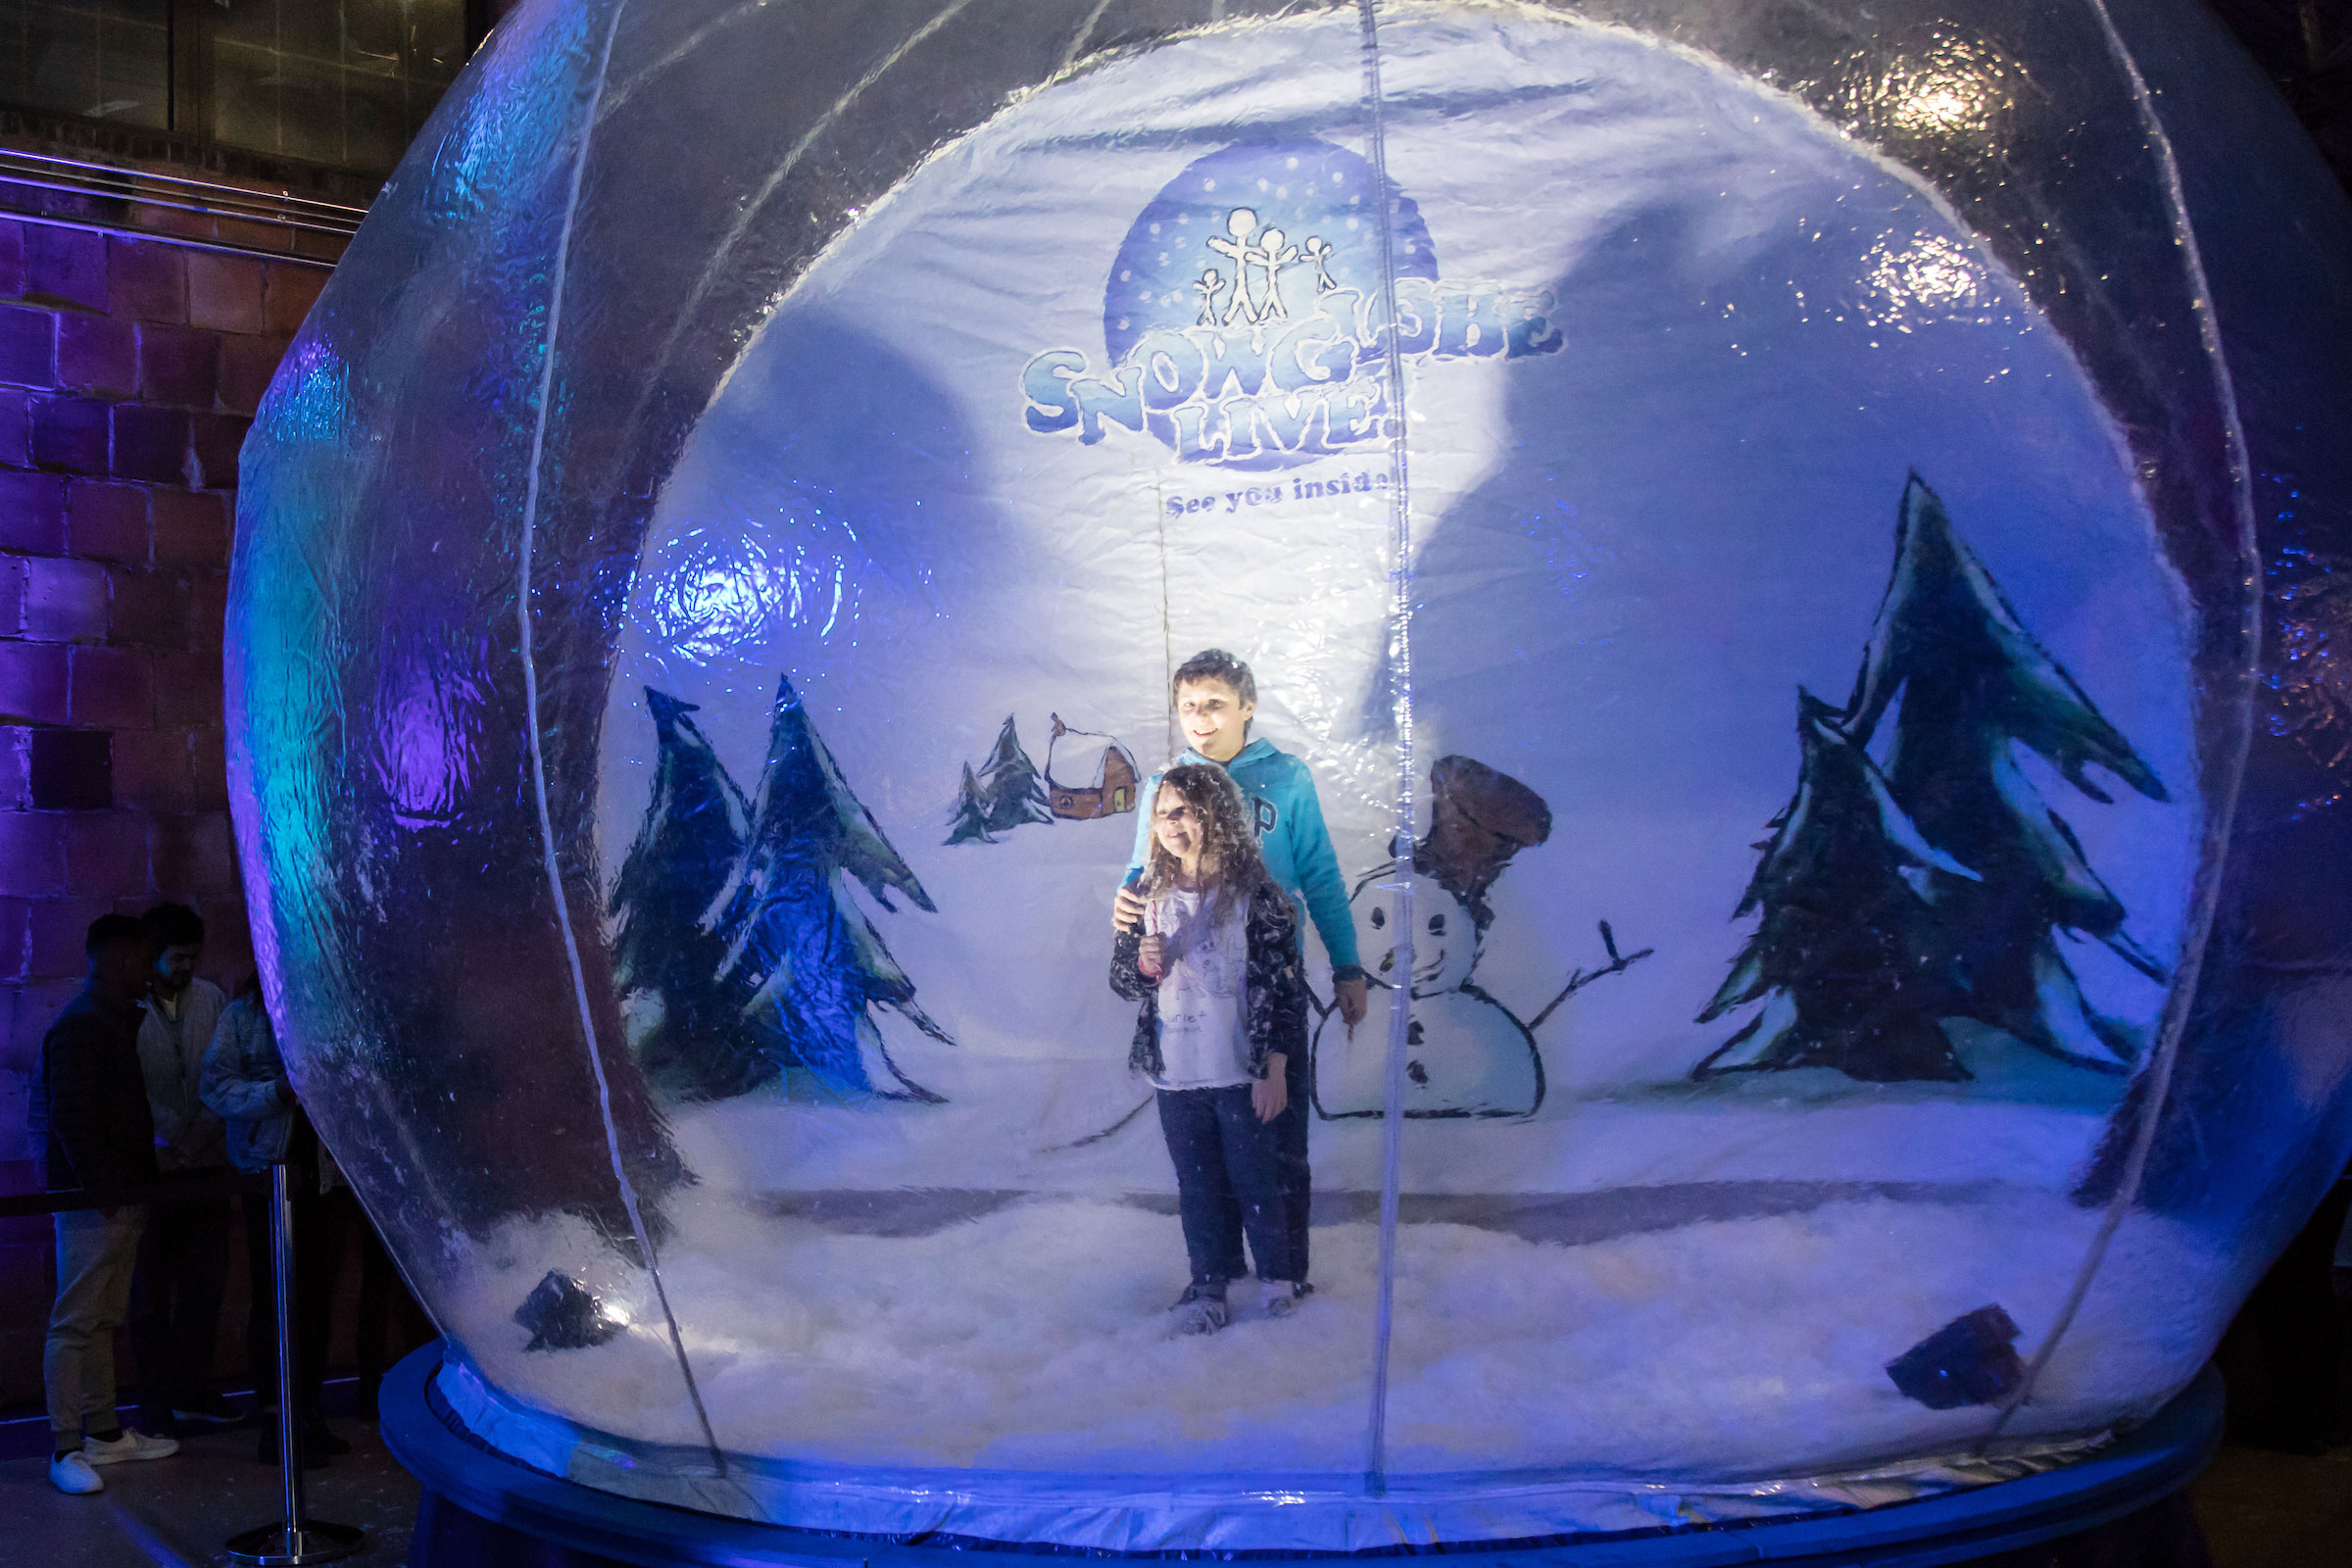 Two children pose inside an inflatable snow globe